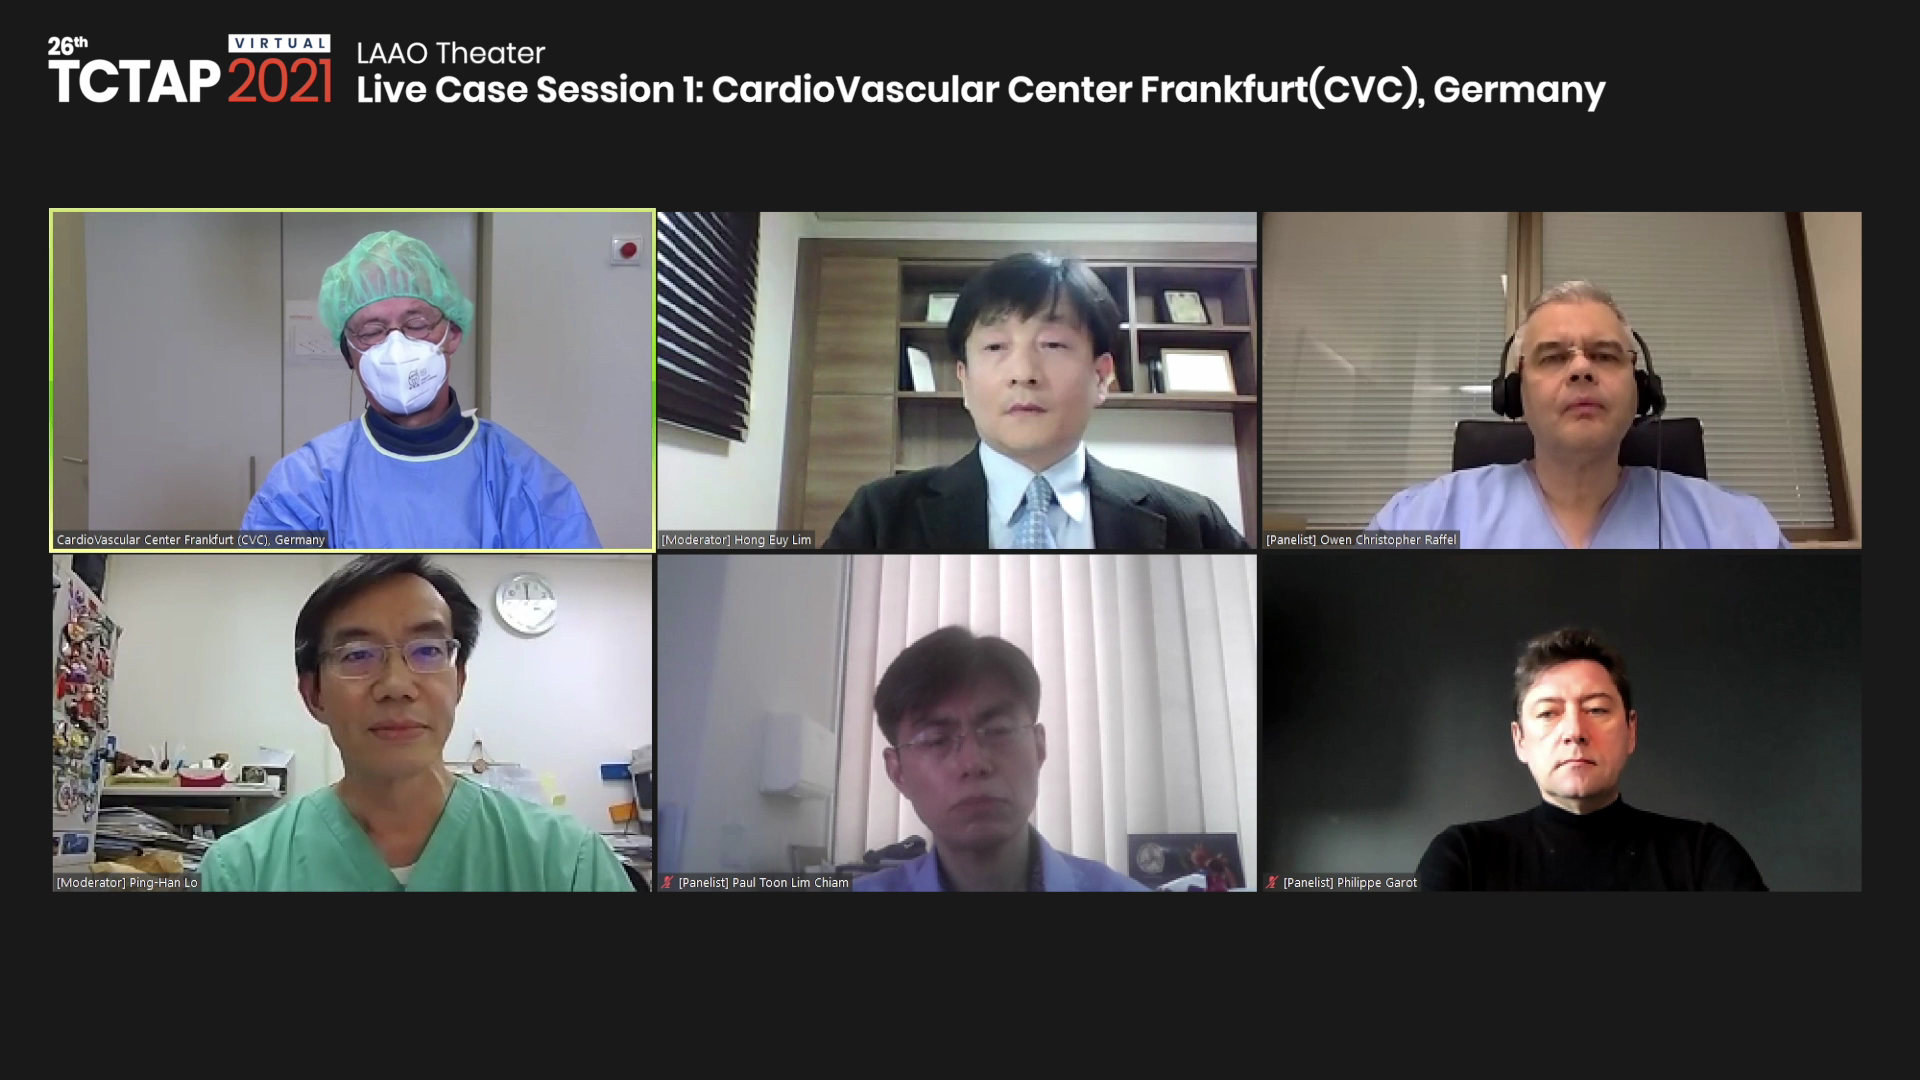 [TCTAP 2021 Virtual] LAAO Theater - Live Case Session 1